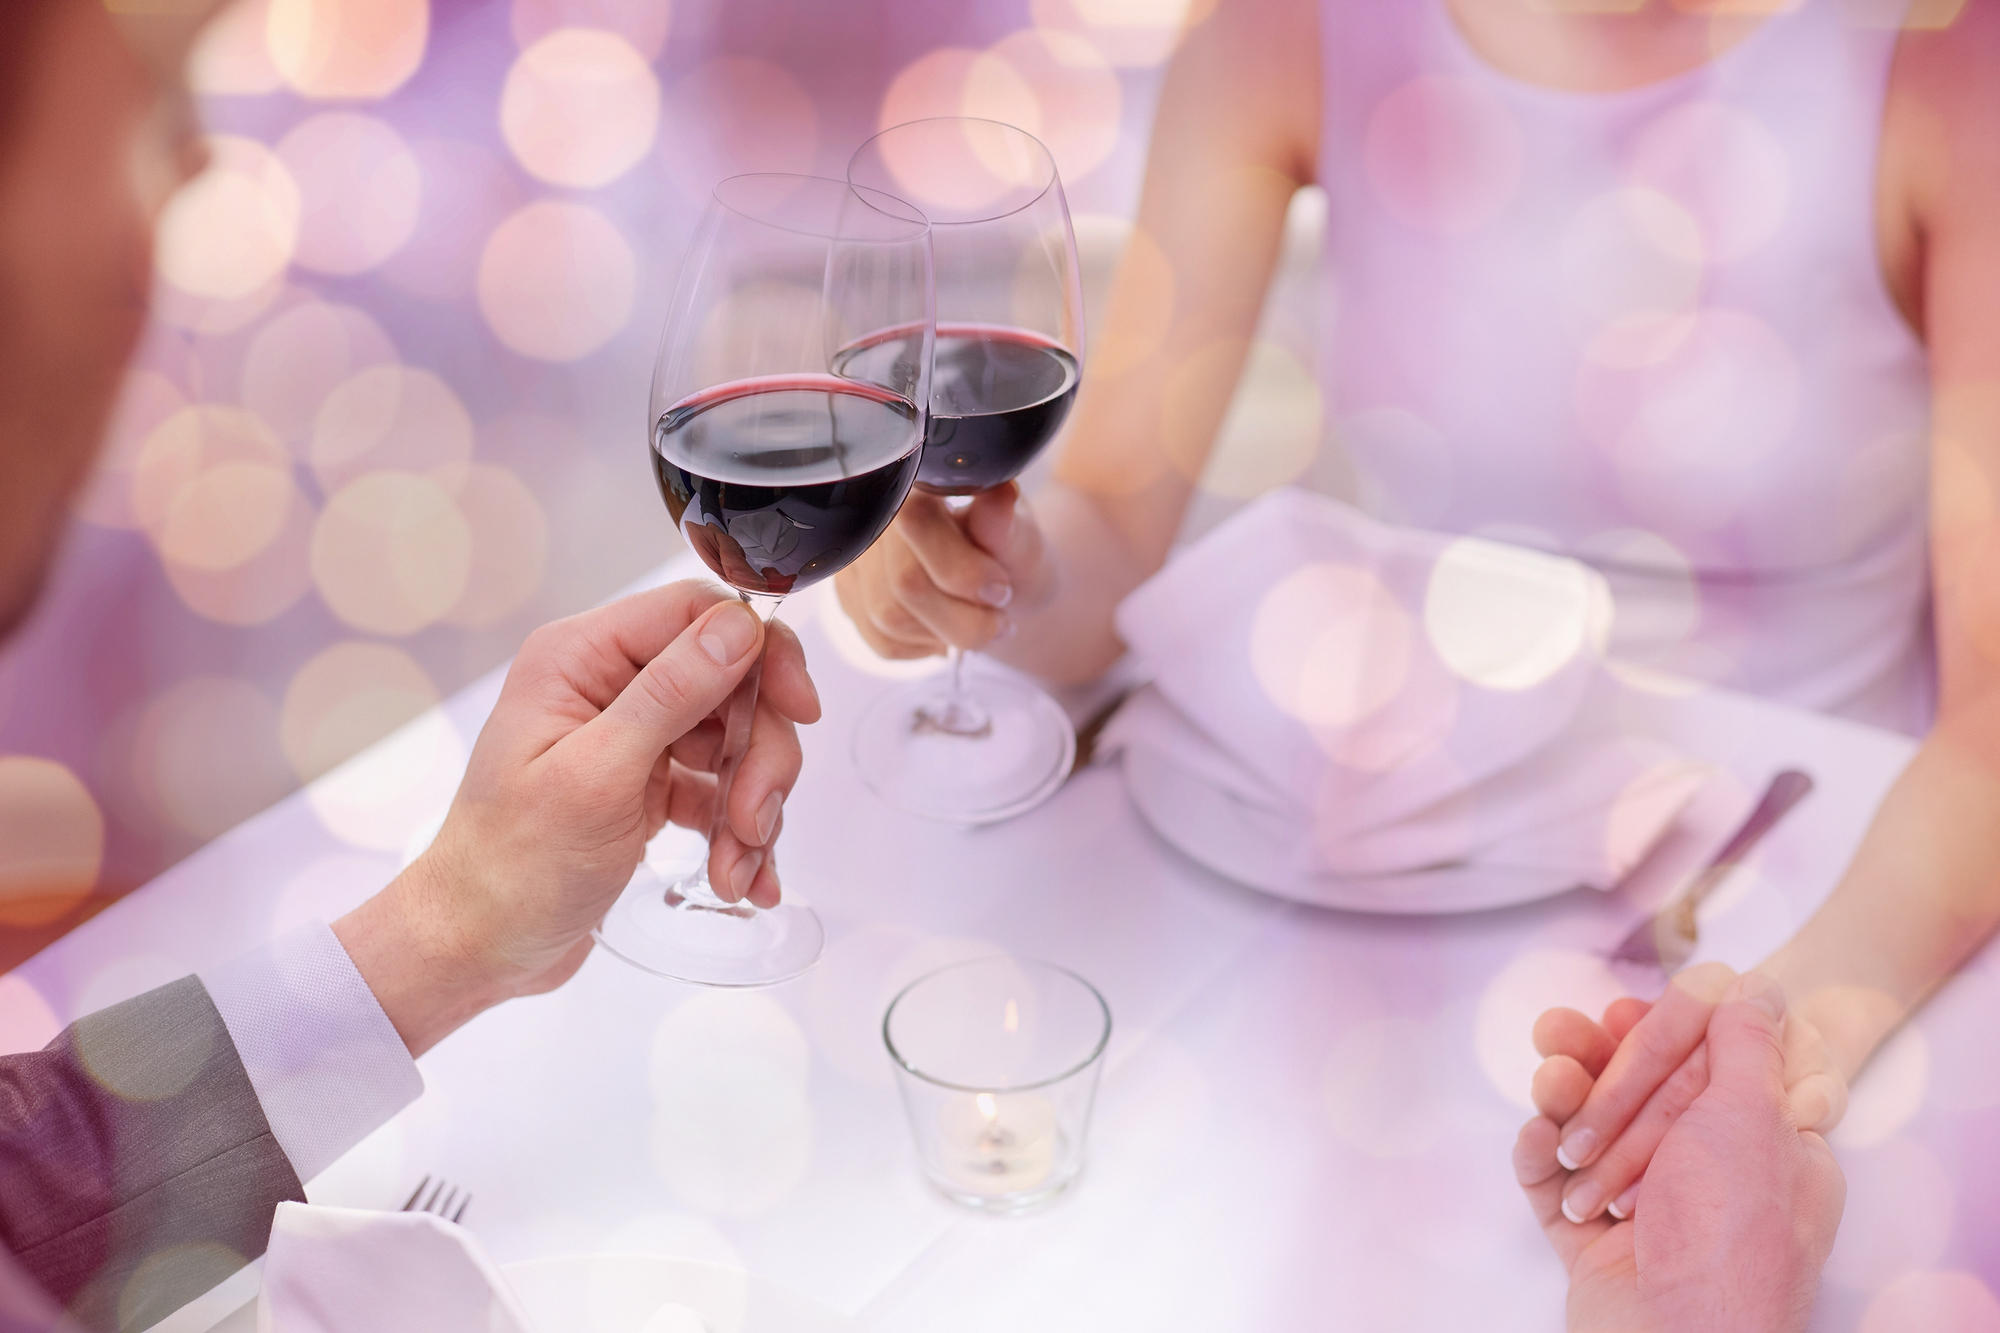 restaurant, people, celebration and holiday concept - close up of young couple with glasses of red wine at restaurant over violet holidays lights background